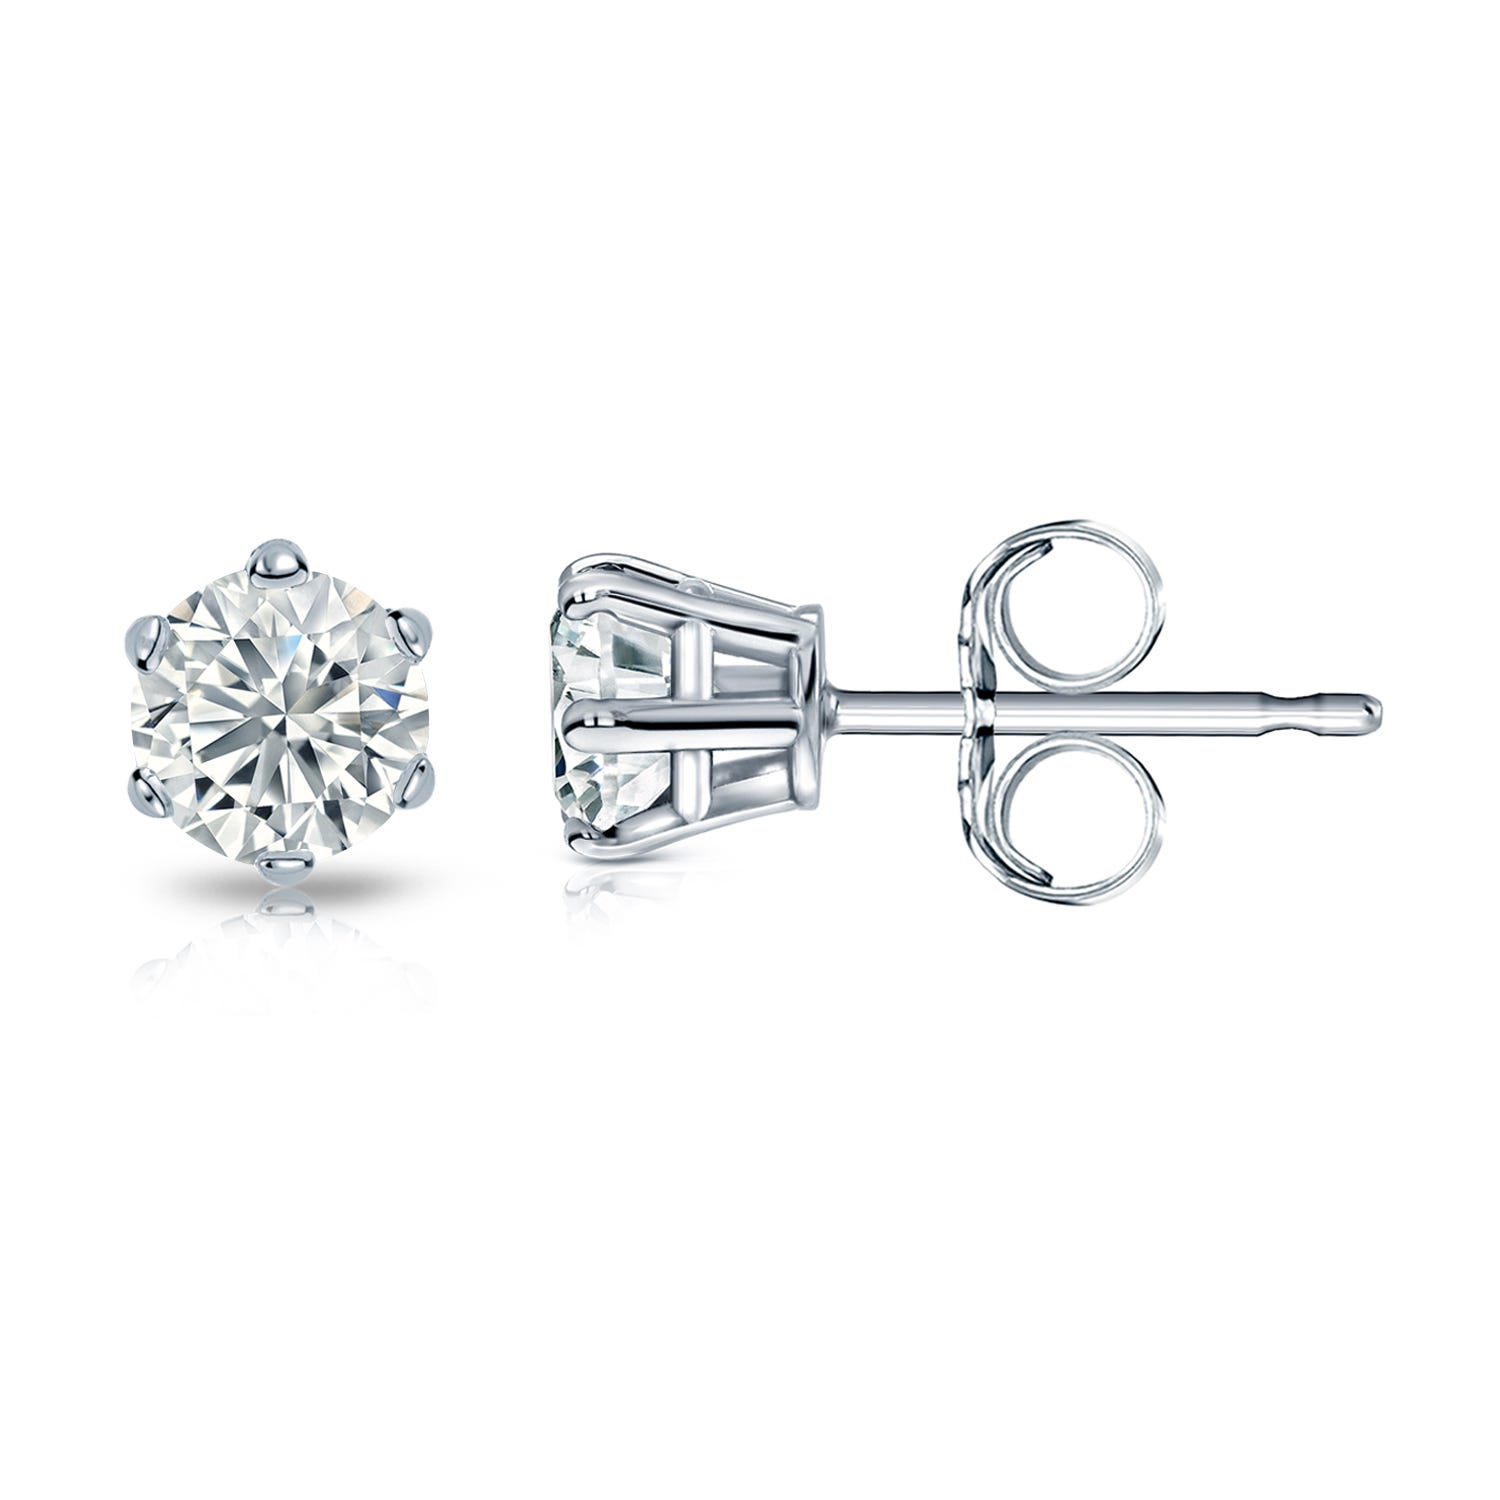 Round Diamond 1/2ctw. (IJ-VS2) Solitaire Stud 6-Prong Earrings in 14K White Gold